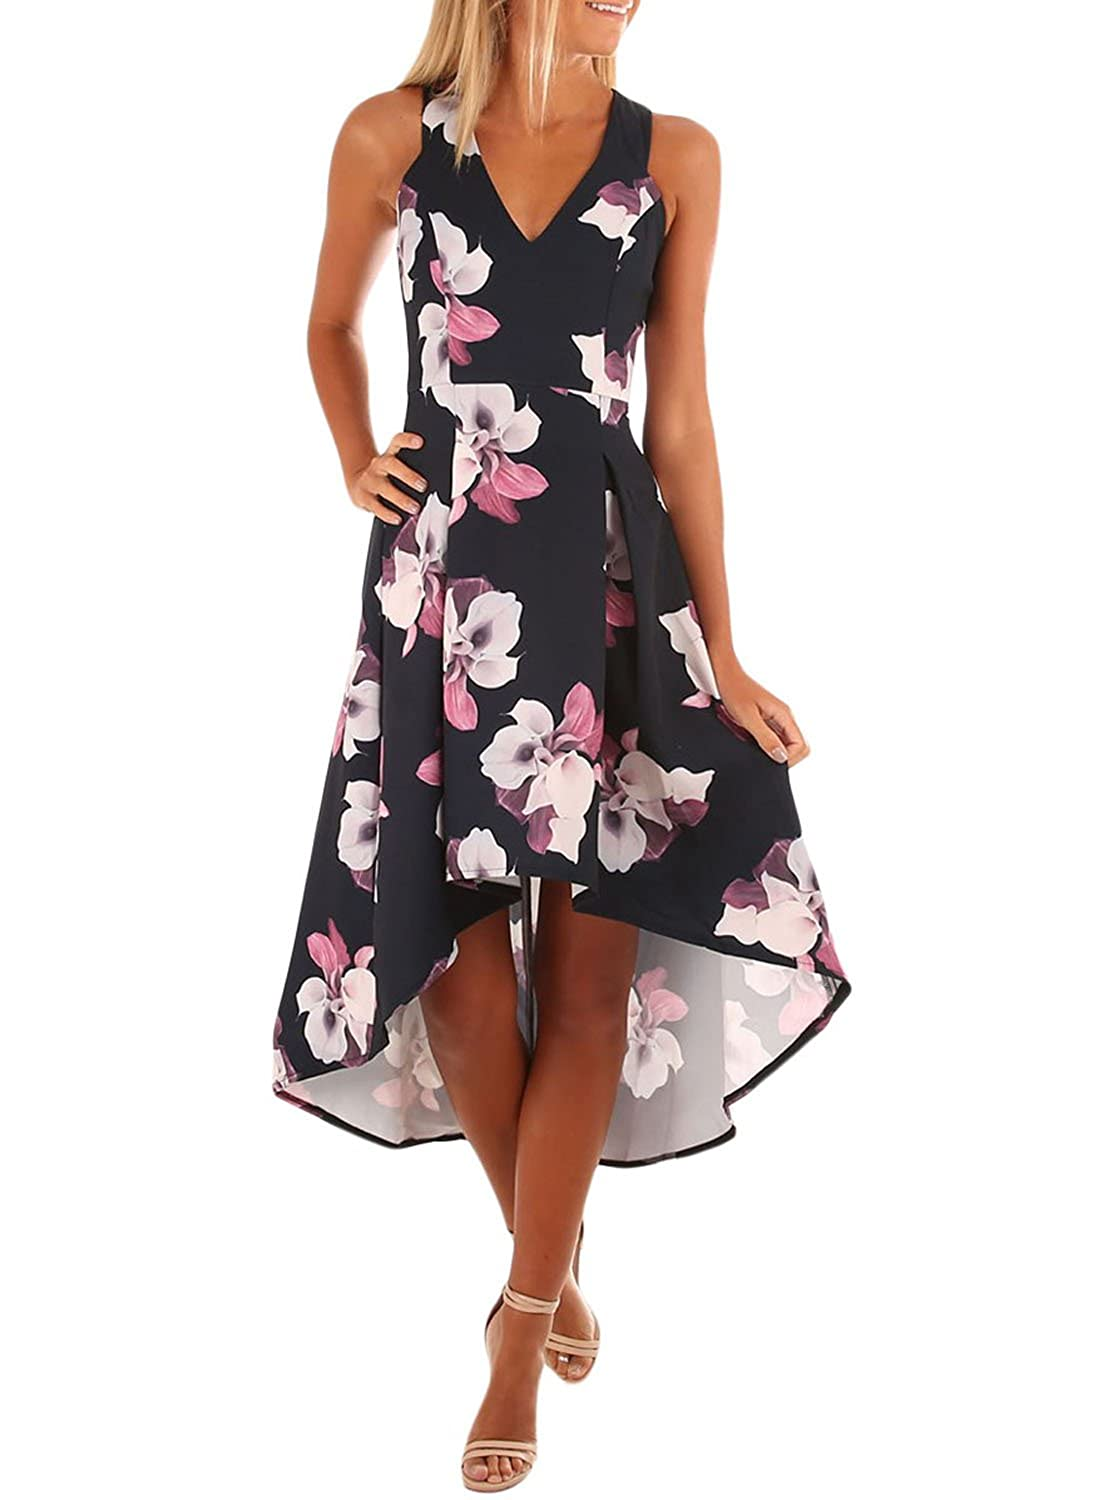 780845d9672 ZKESS Women s V Neck Sleeveless Floral Print High Low Midi Party Dress at  Amazon Women s Clothing store